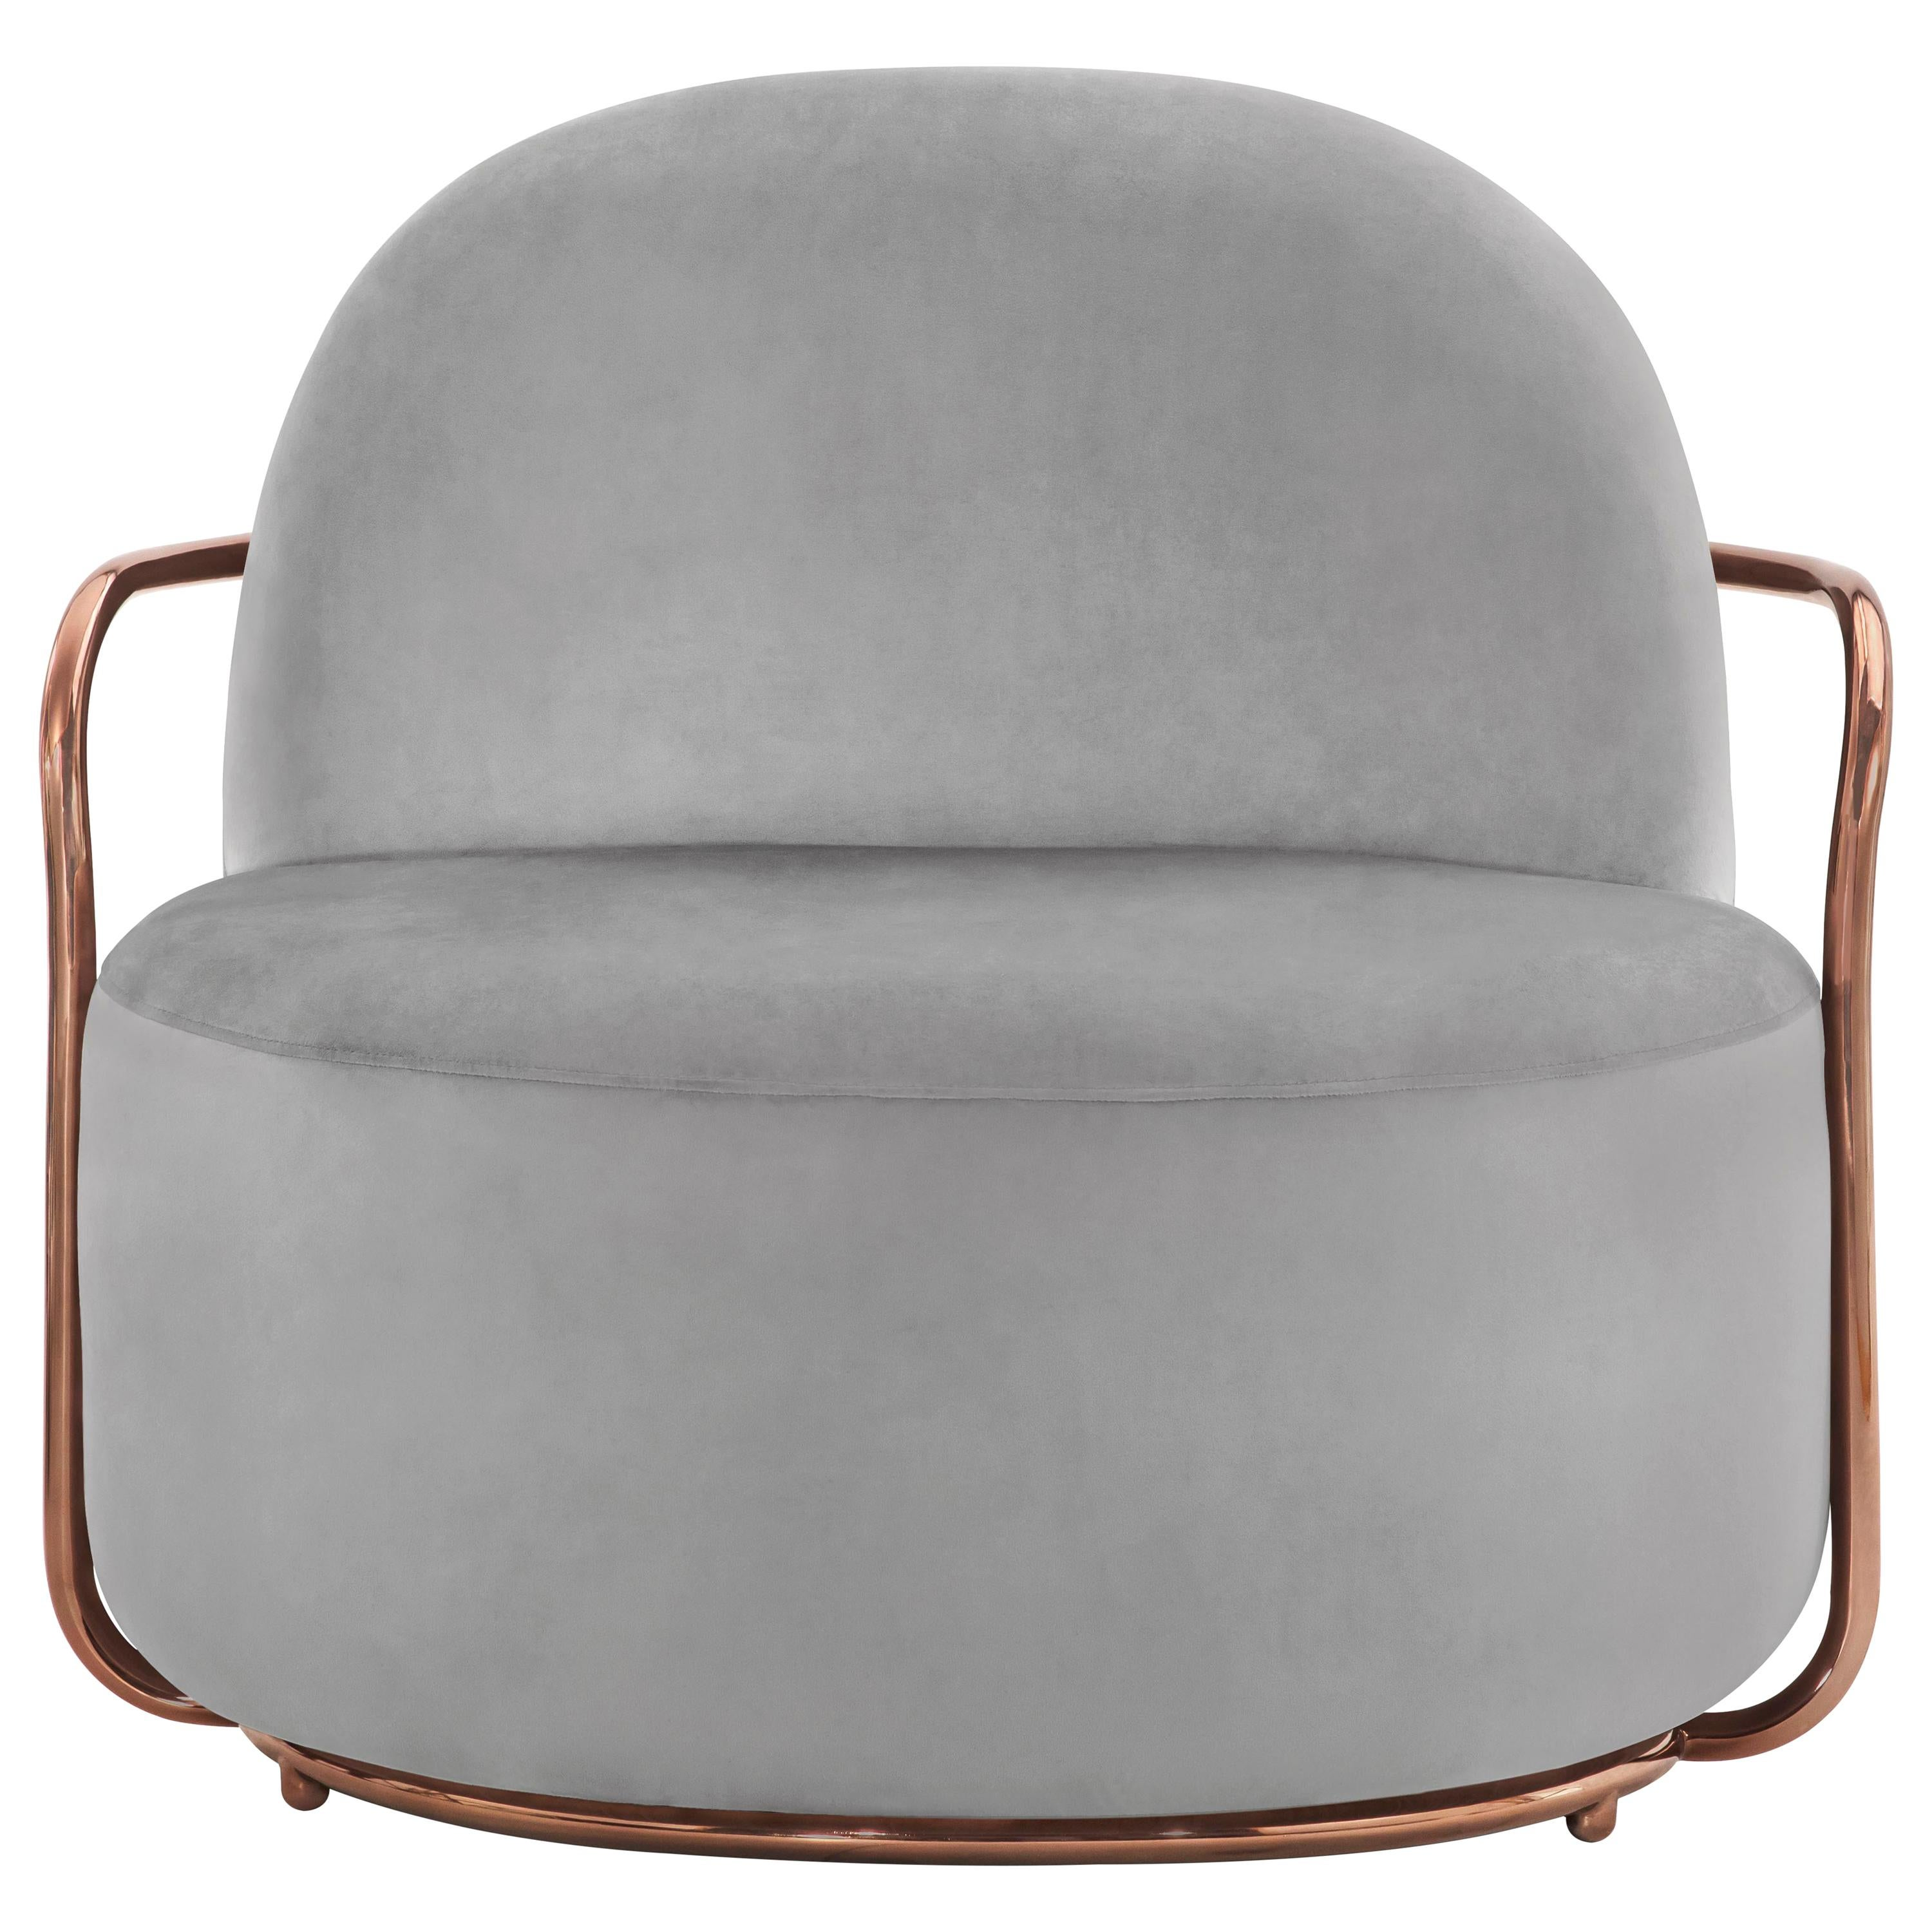 Orion Lounge Chair with Plush Gray Velvet and Rose Gold Arms by Nika Zupanc